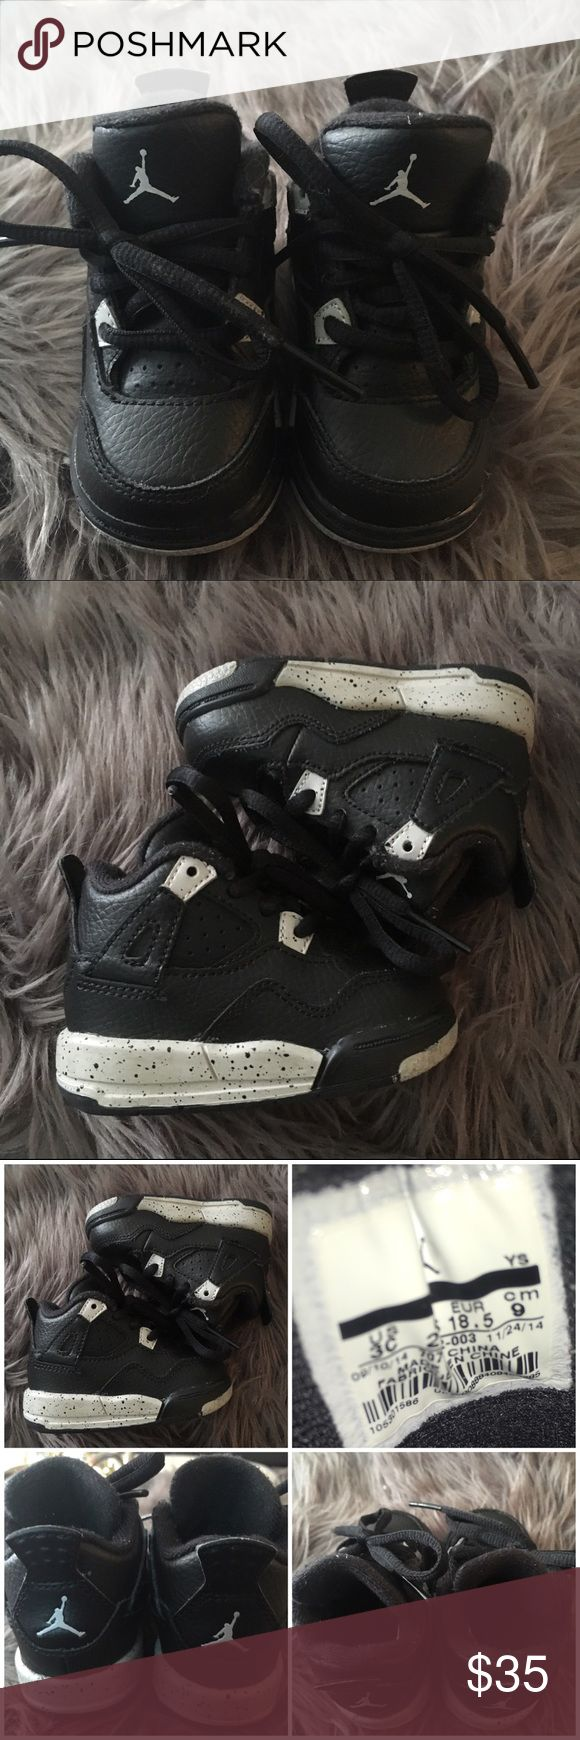 Baby Nike Air Jordan Retro 4 (Oreo) Baby Air Jordan Retro 4 sz 3C. Great condition. Listing for shoes only Jordan Shoes Sneakers